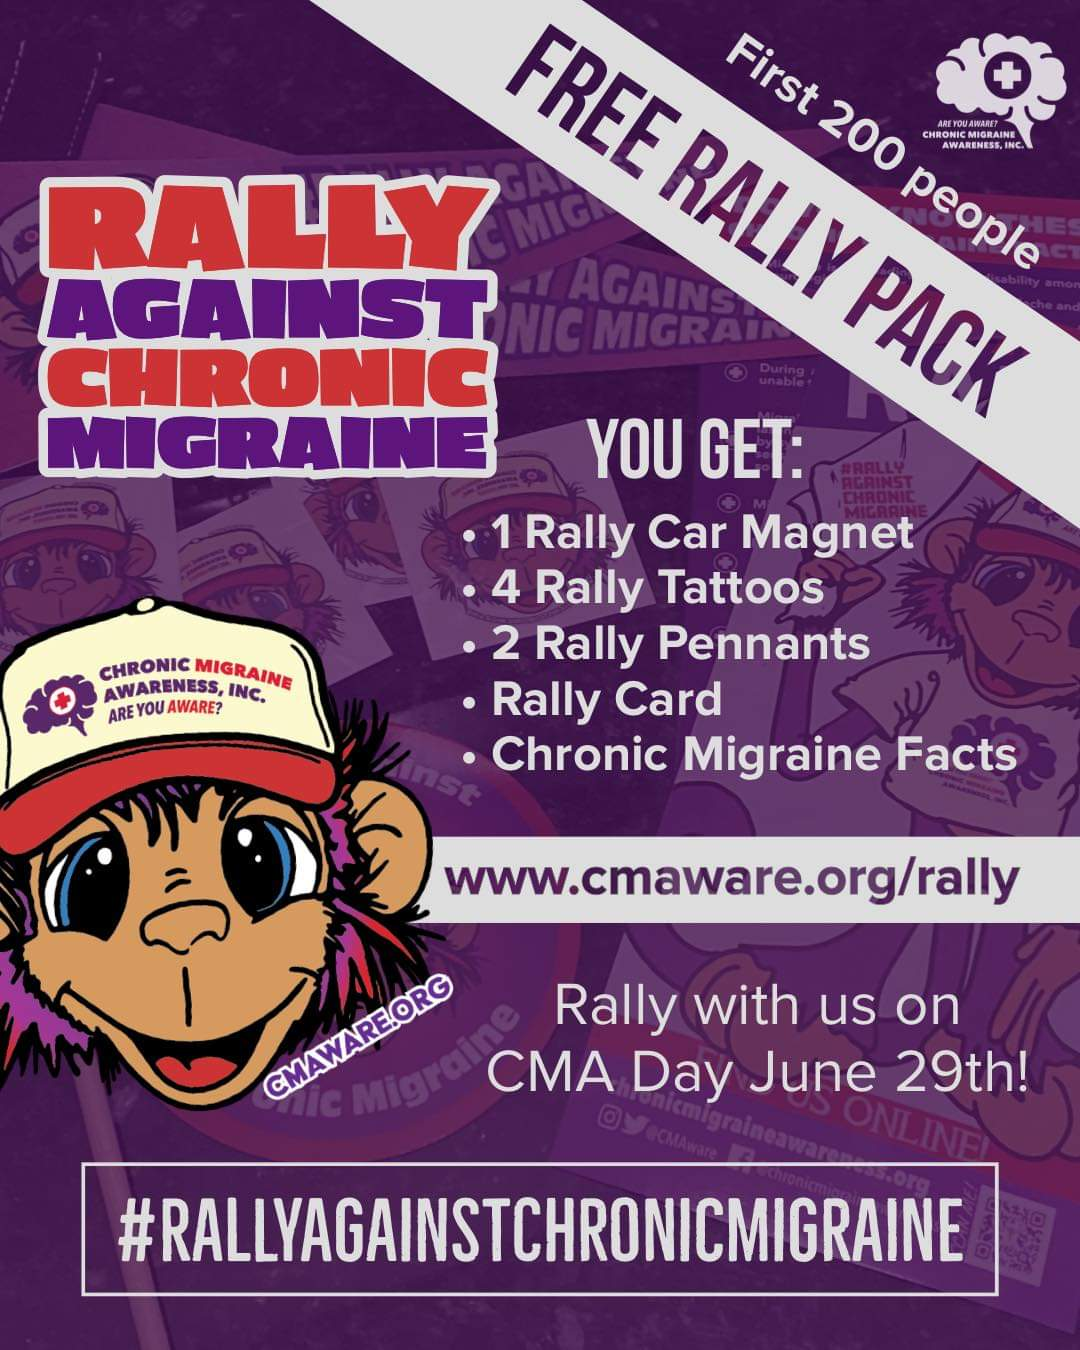 Rally Against Chronic Migaine. FIrst 200 people get a free rally pack. You Get: 1 rally car magnet, 4 rally tattoos, 2 rally pennants, rally card and chronic migraine facts. Rally iwht us on CMA Day on June 29th.